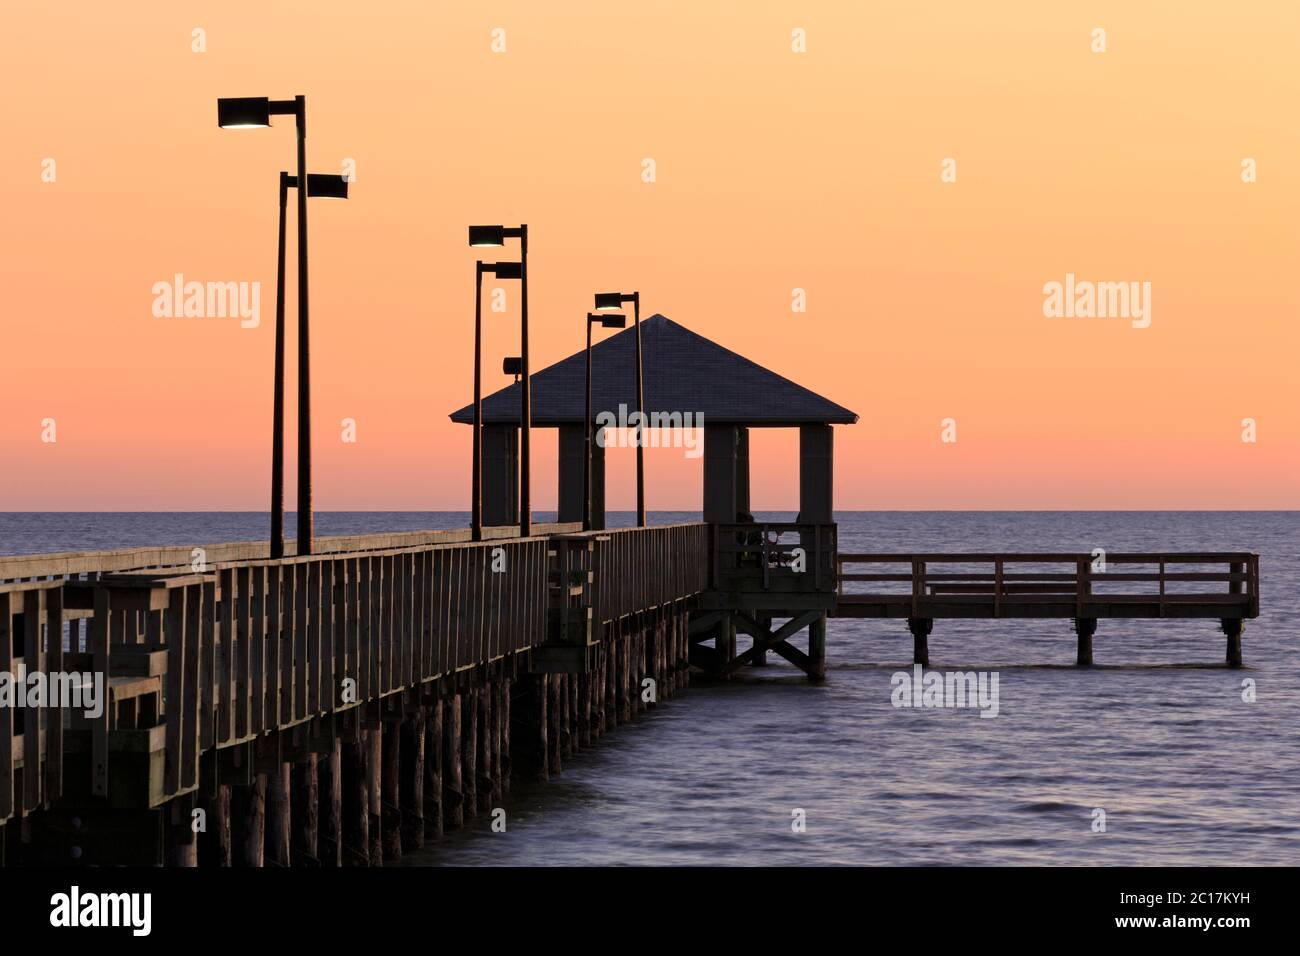 Lighthouse Pier Biloxi Mississippi Usa Stock Photo Alamy